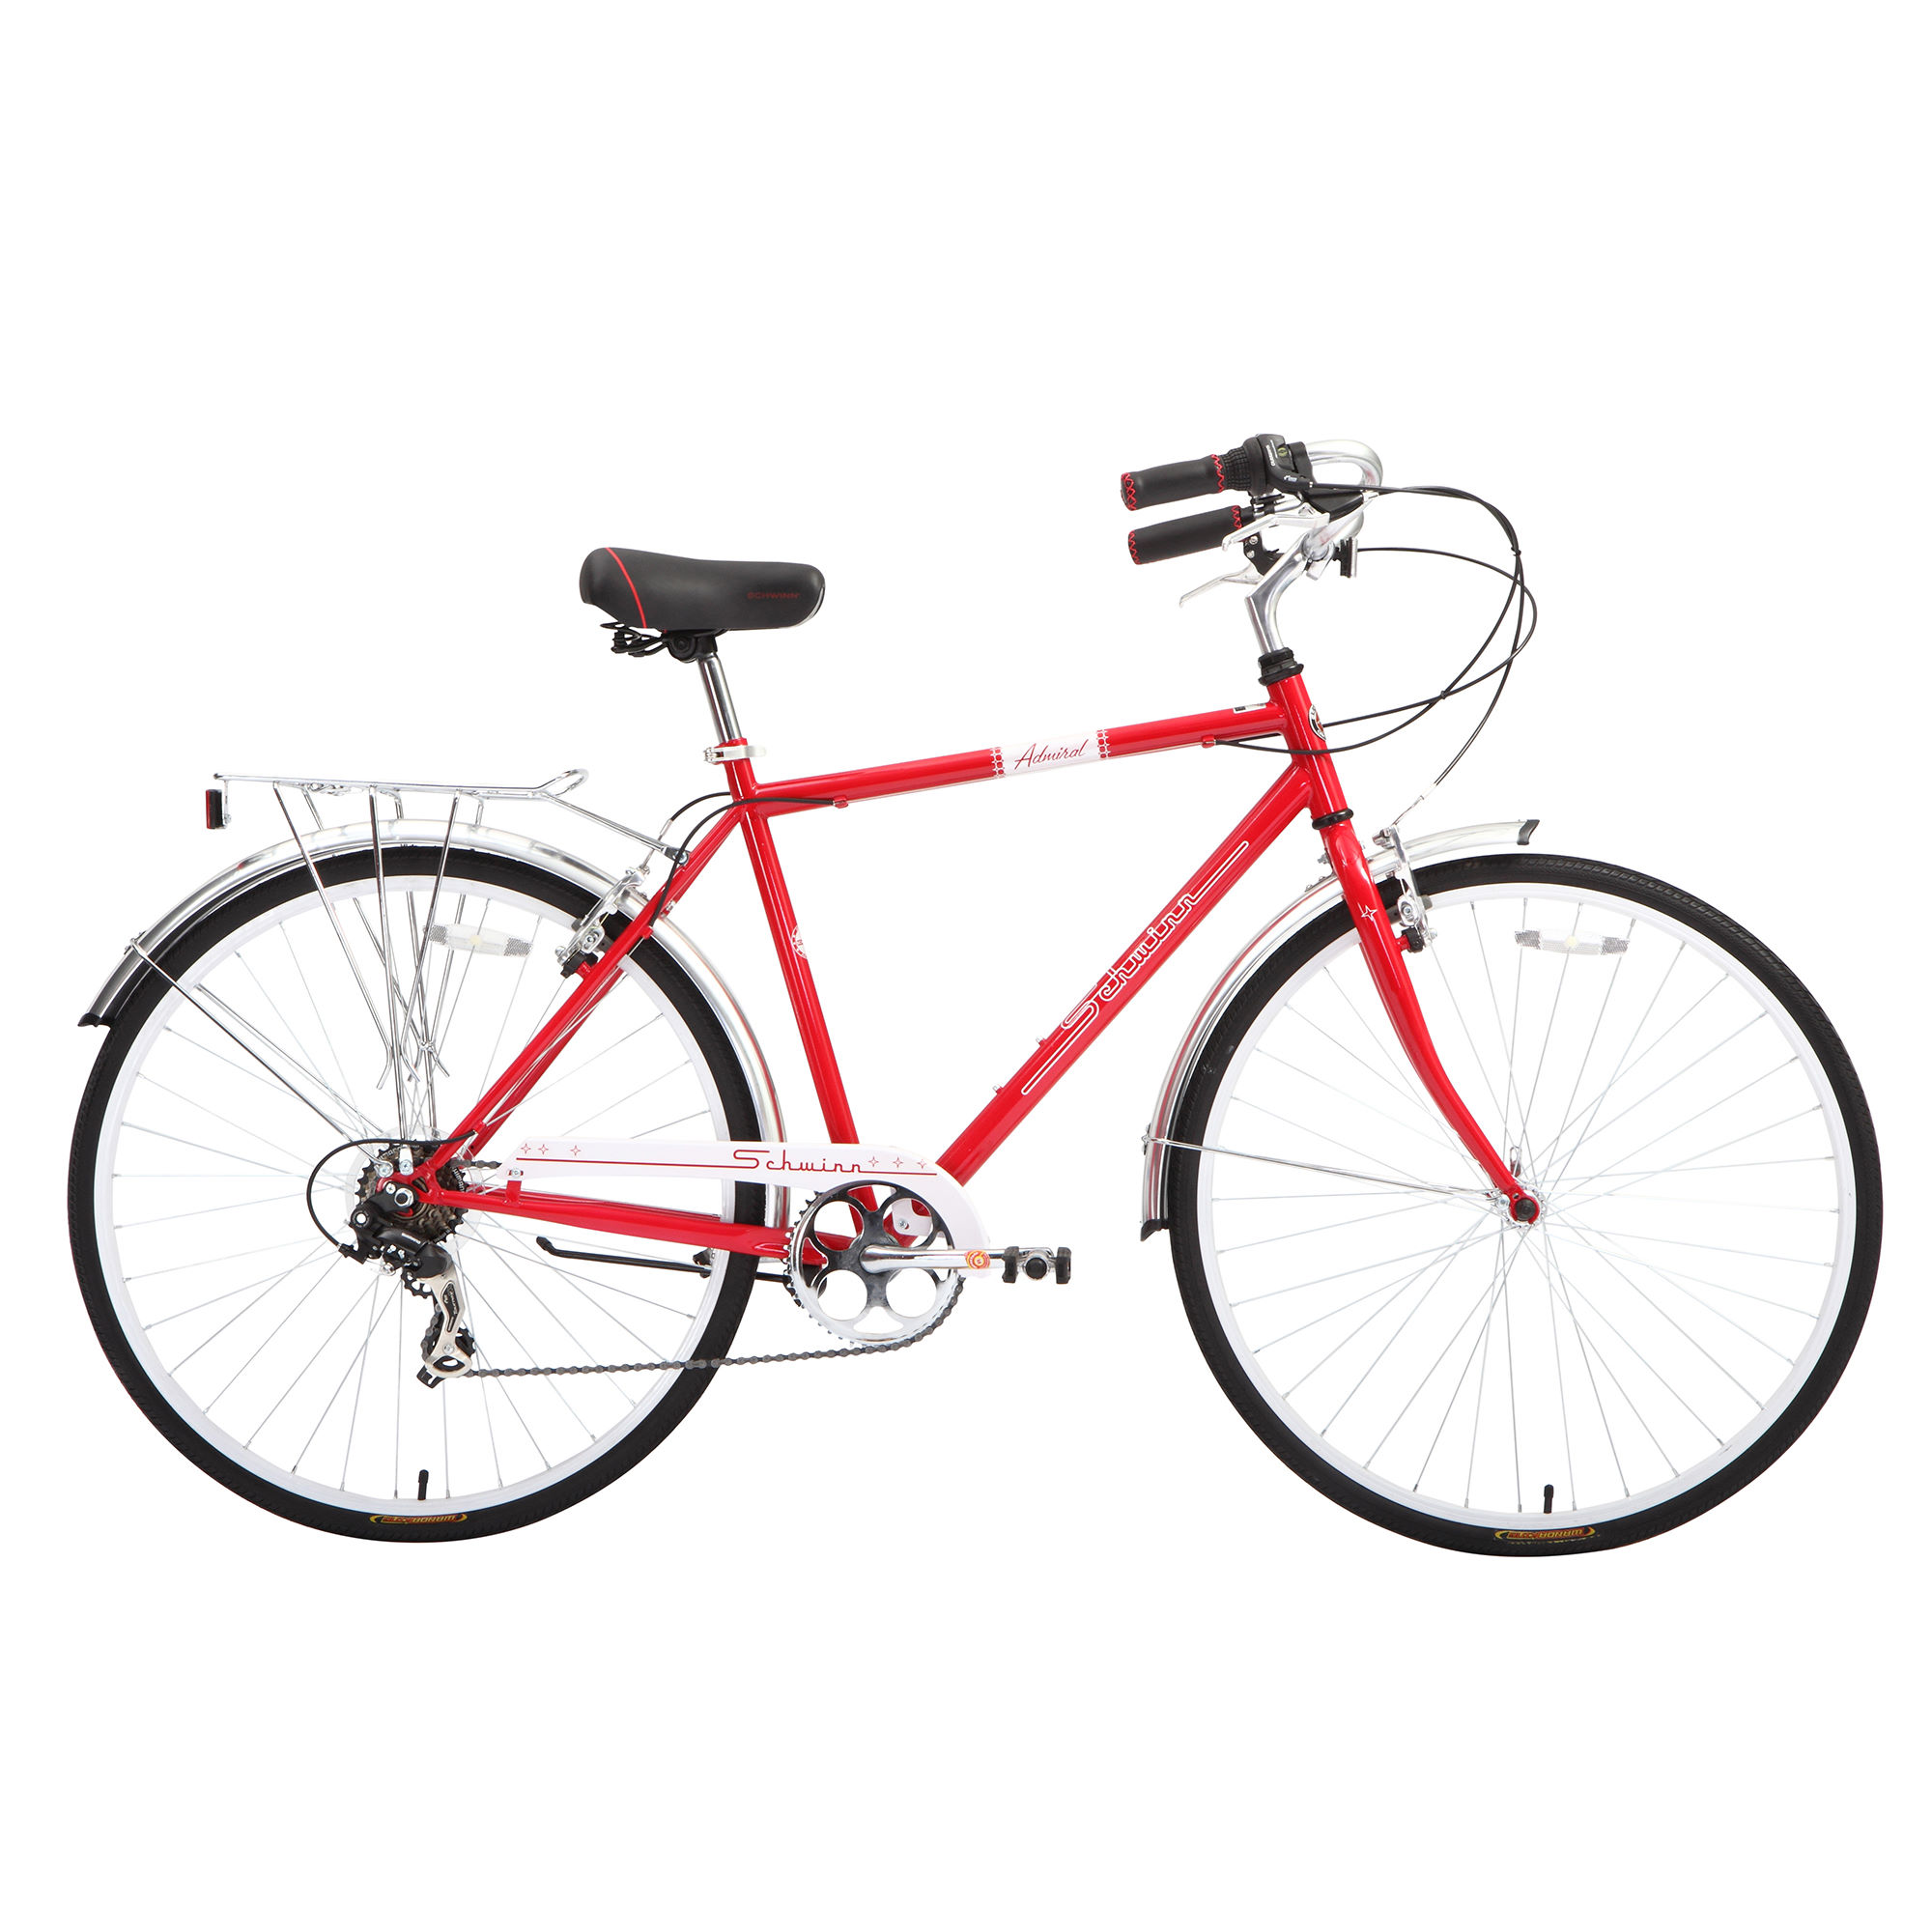 http://www.wigglestatic.com/product-media/6360121212/Schwinn-Admiral-2016-Hybrid-Bike-Hybrid-City-Bikes-Red-Clearance-BYSWM4ADMIRRED.jpg?w=2000&h=2000&a=7